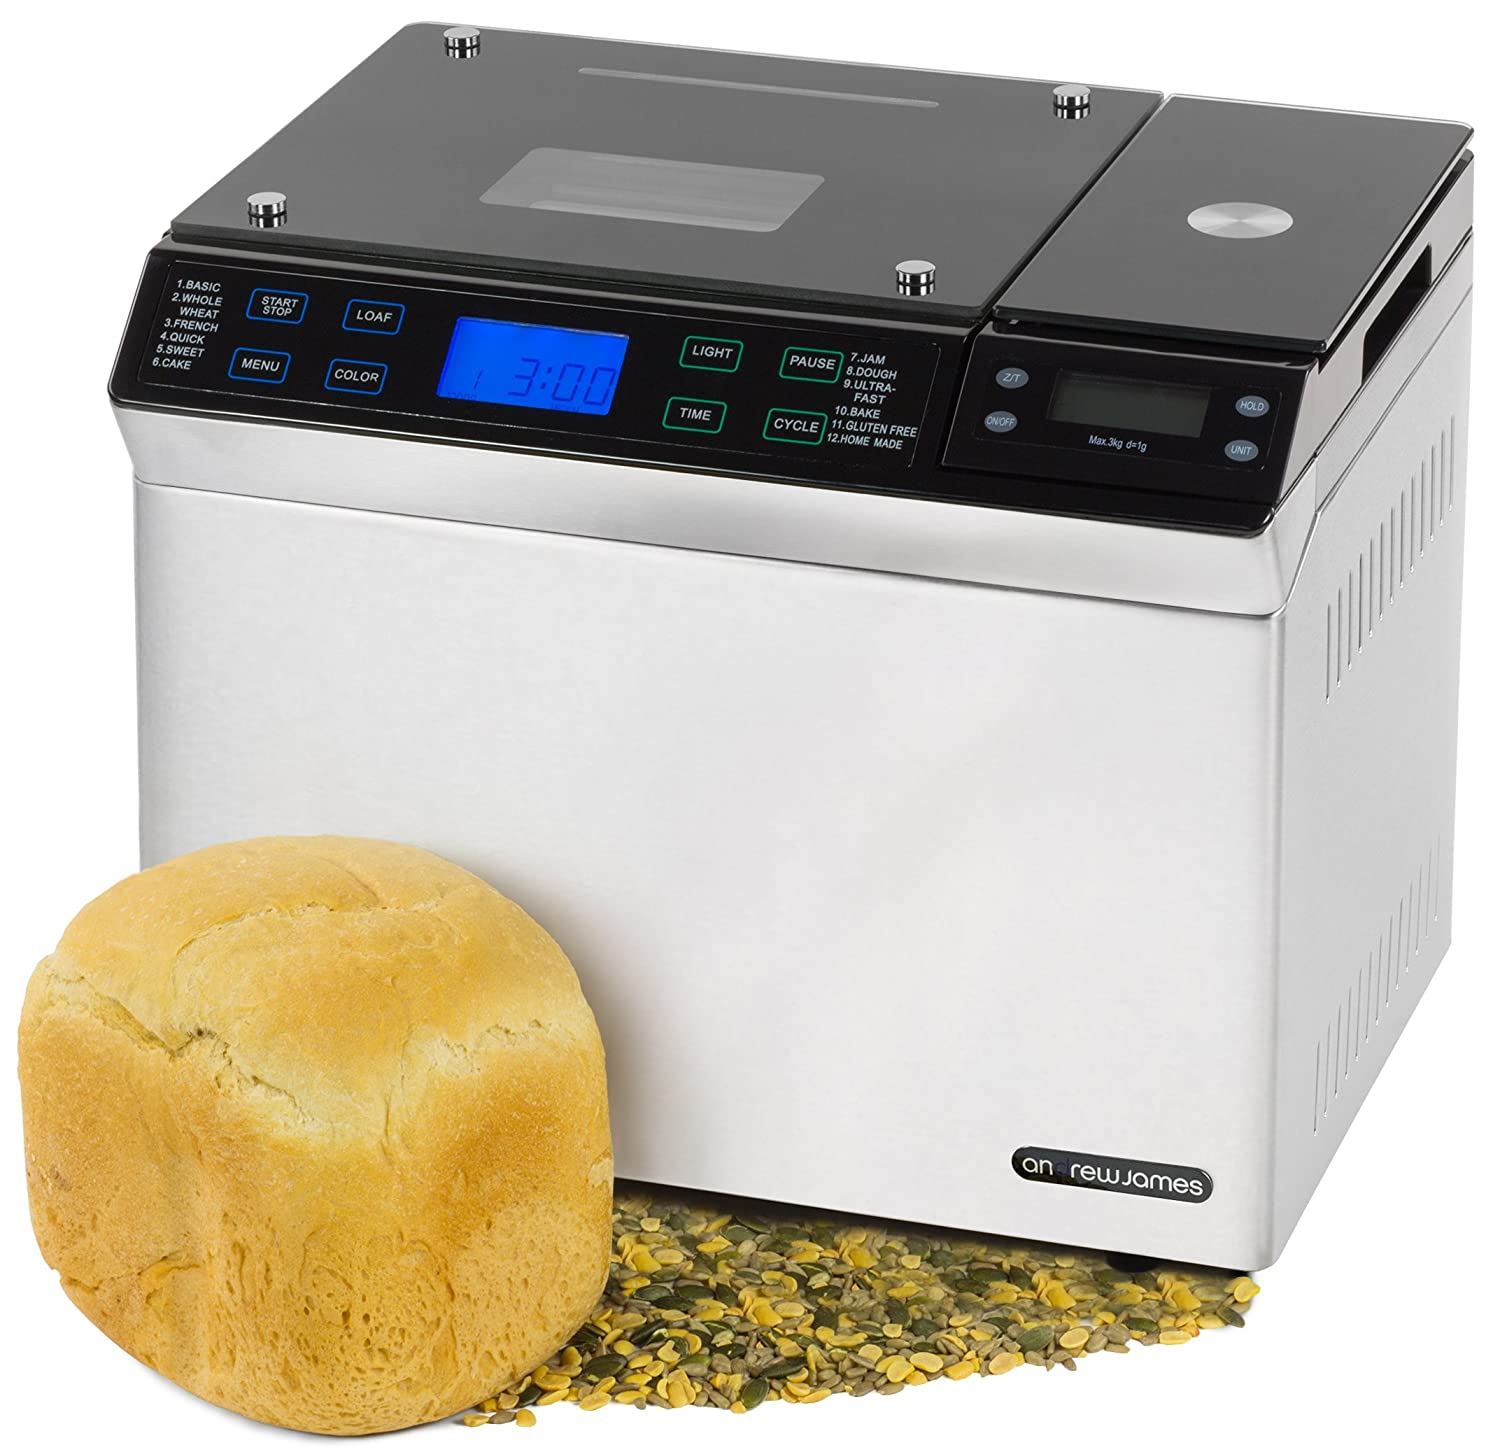 Andrew James Stainless Steel Digital Bread Maker With Scales, 12 Pre-set Functions & Automatic Ingredients Nut And Raisin Dispenser -...